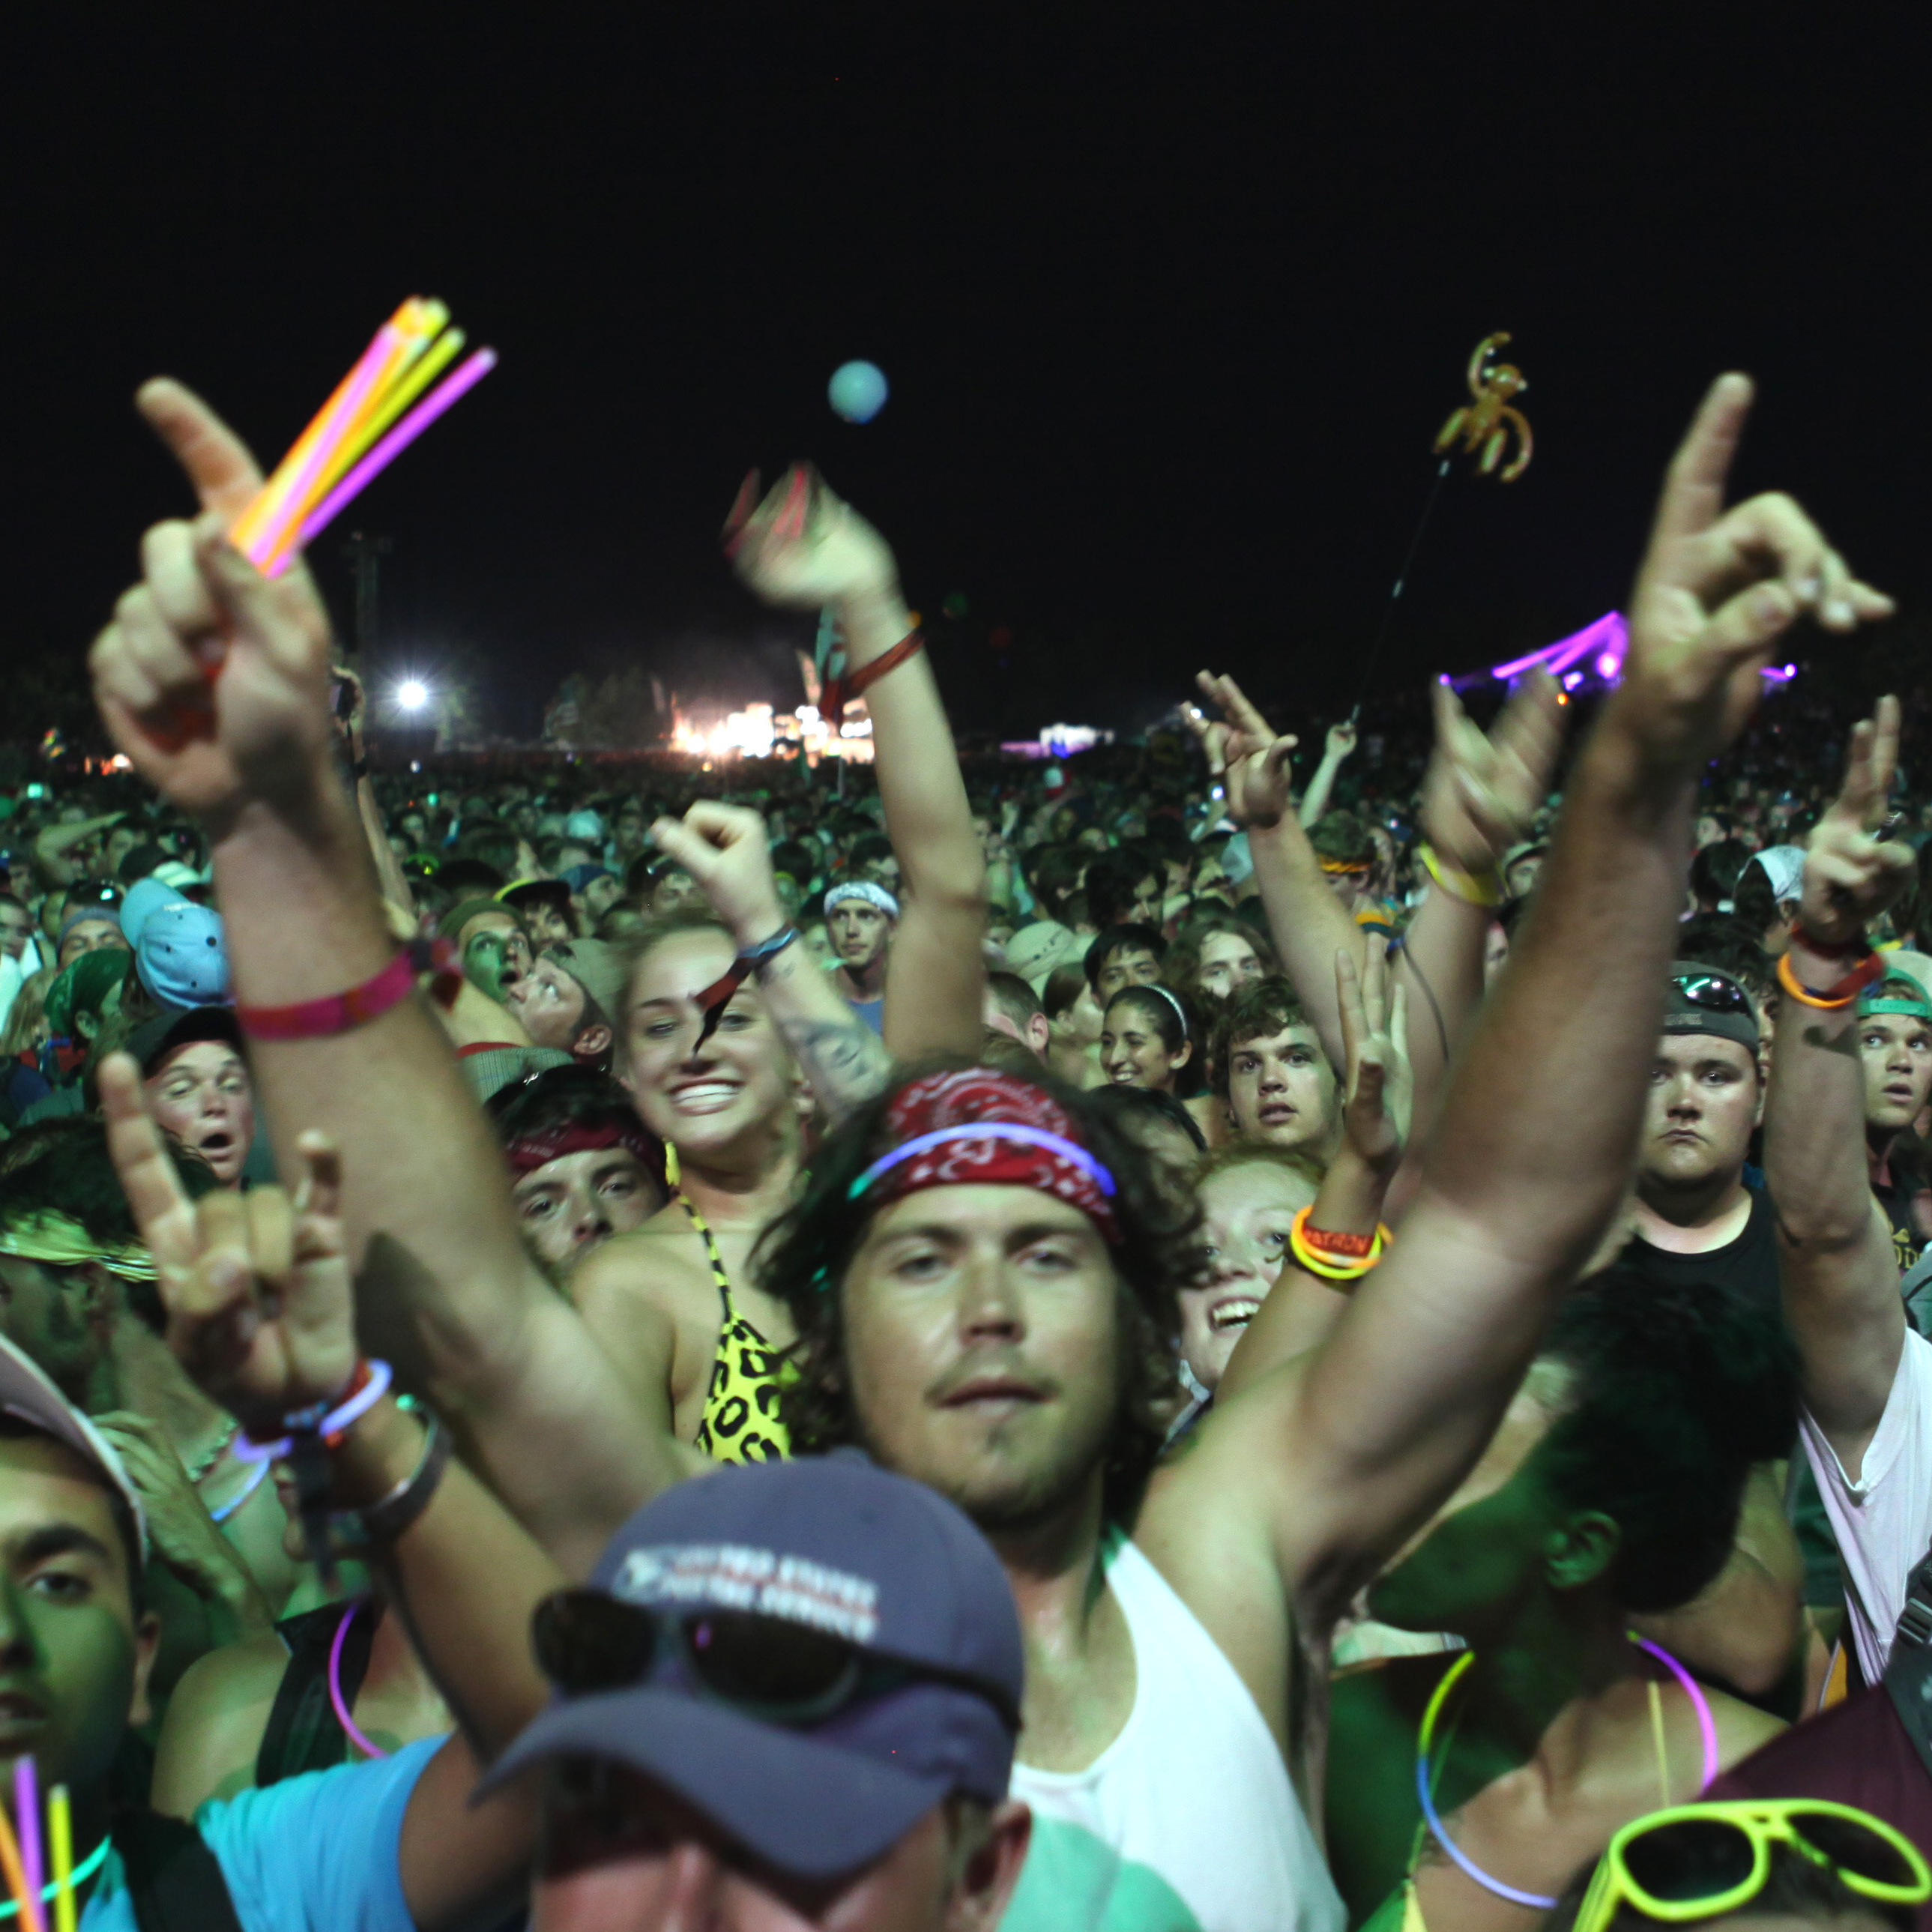 The crowd at Dave Matthews Band's 2010 performance at Bonnaroo.